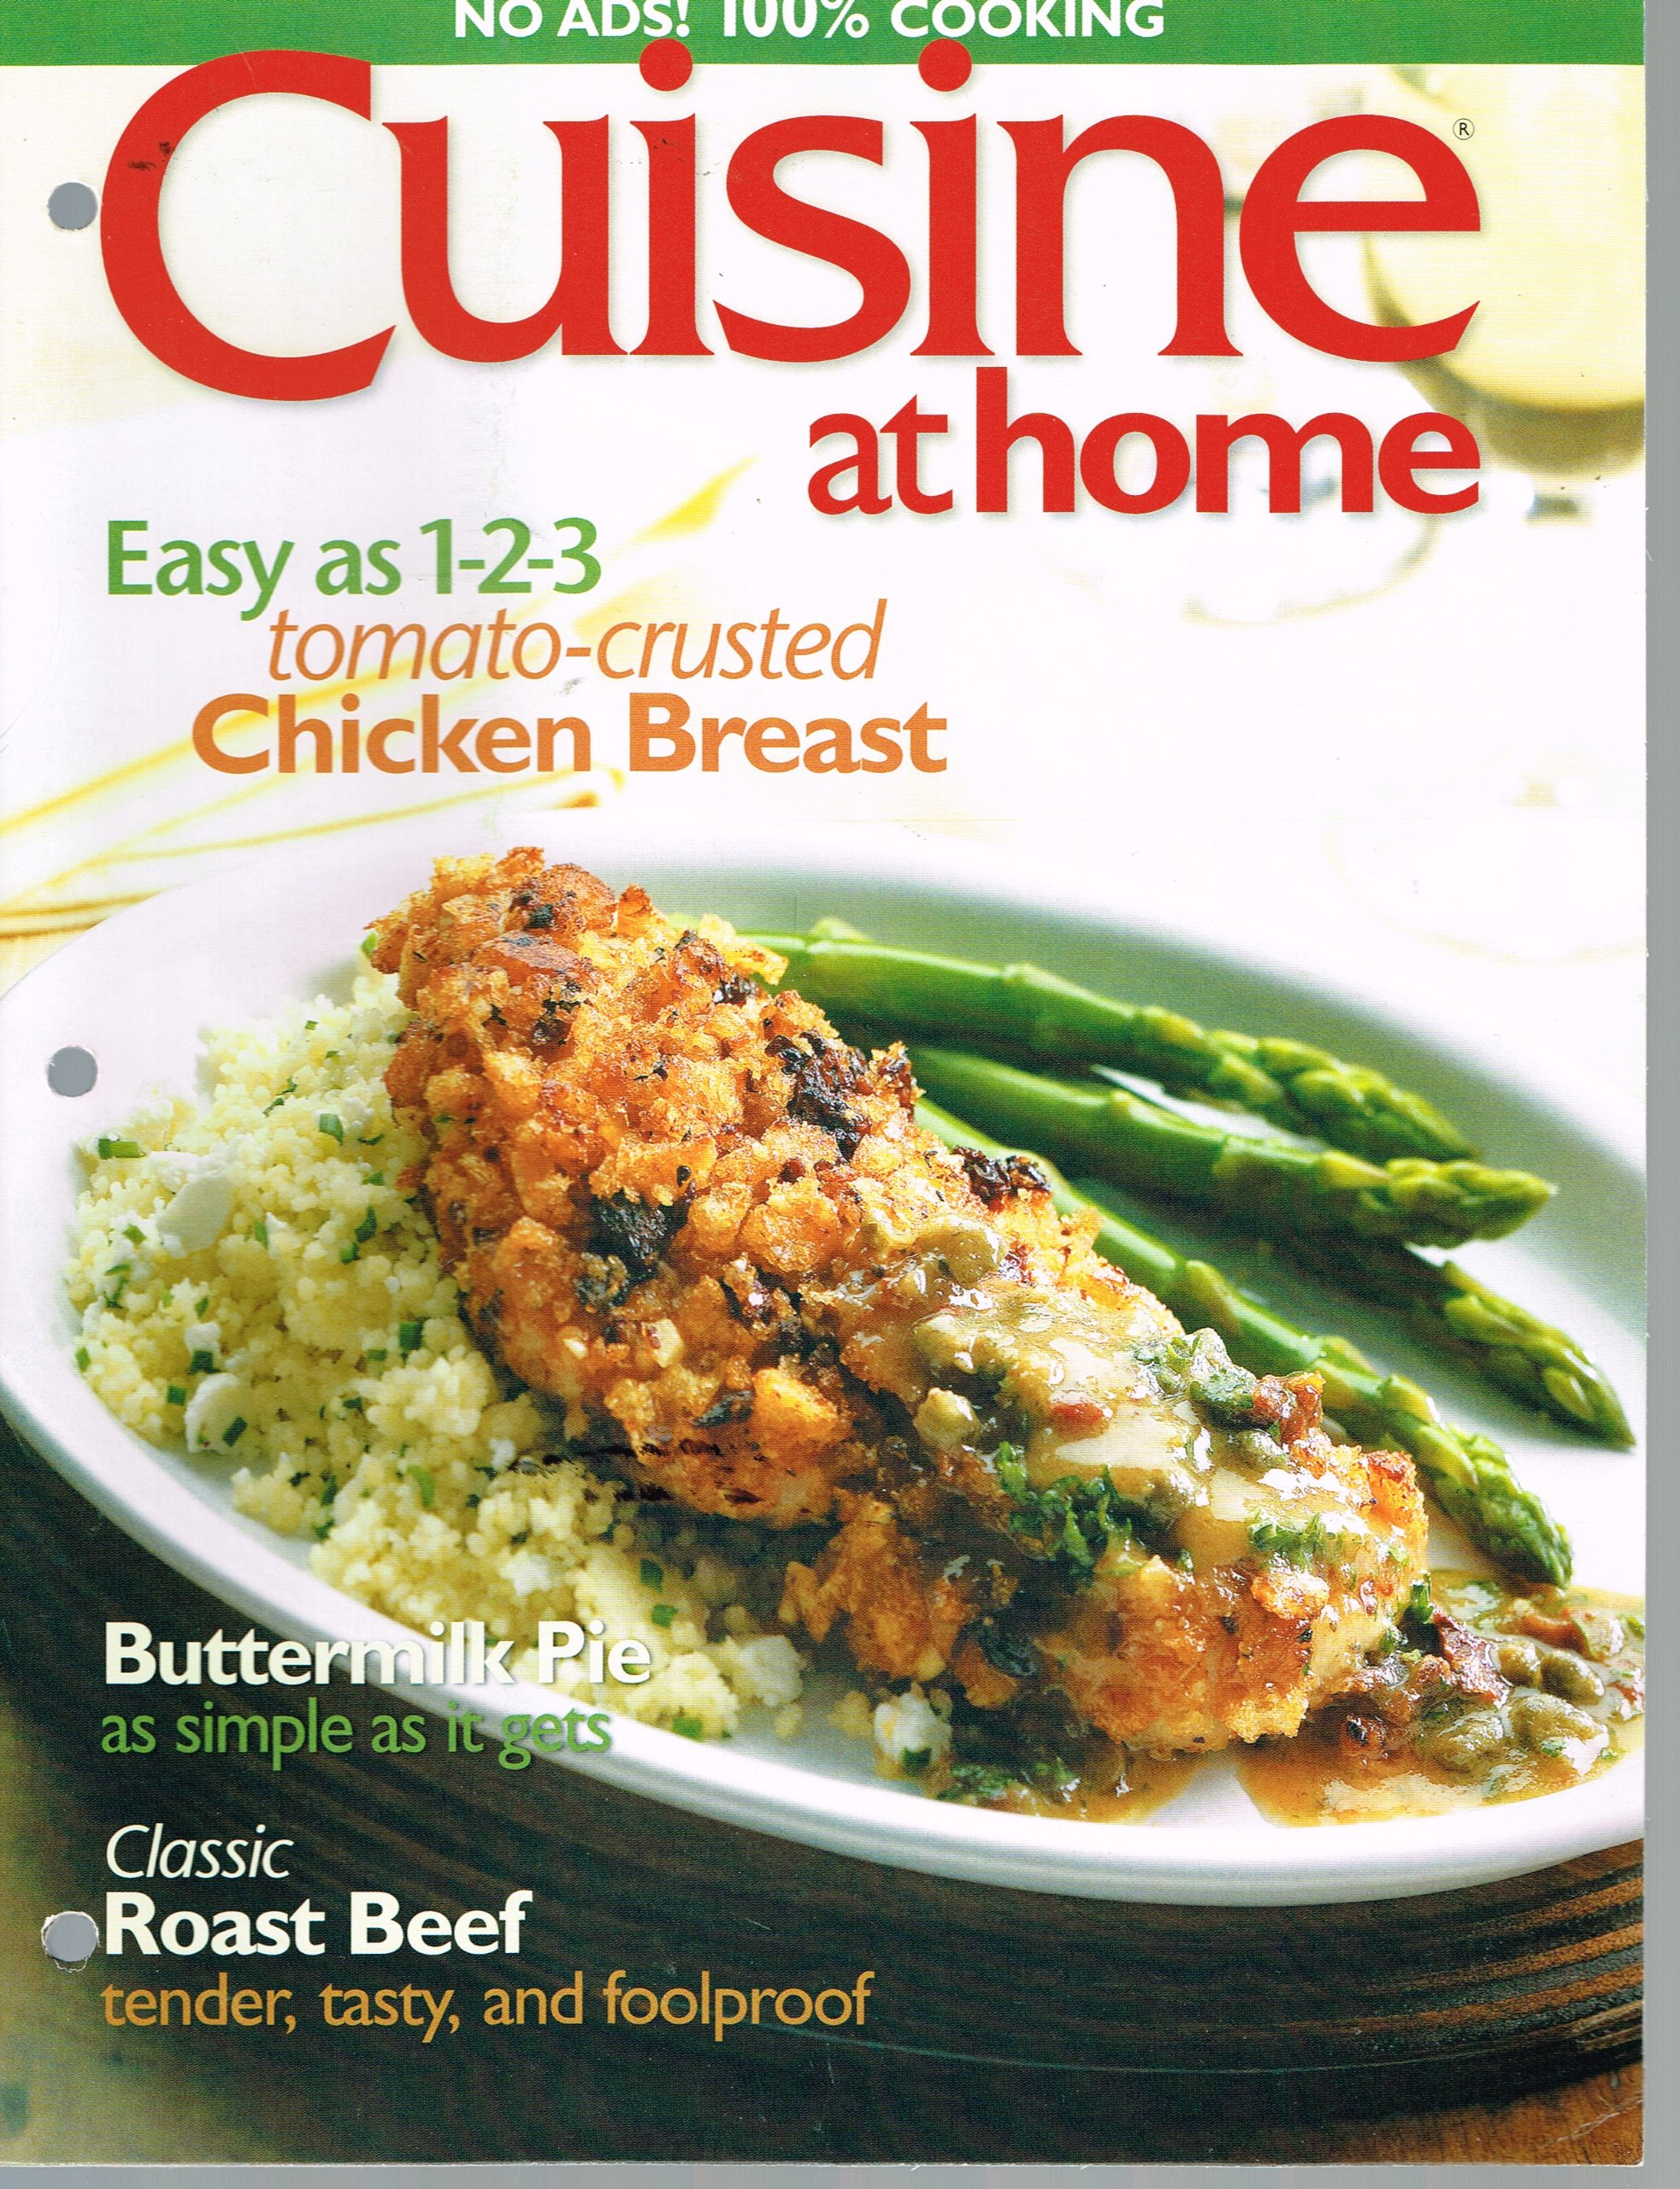 Download Cuisine At Home, August 2005, Single Issue (Tomato-crusted CHicken Breast, Buttermilk Pie, Classic Roast Beef) PDF